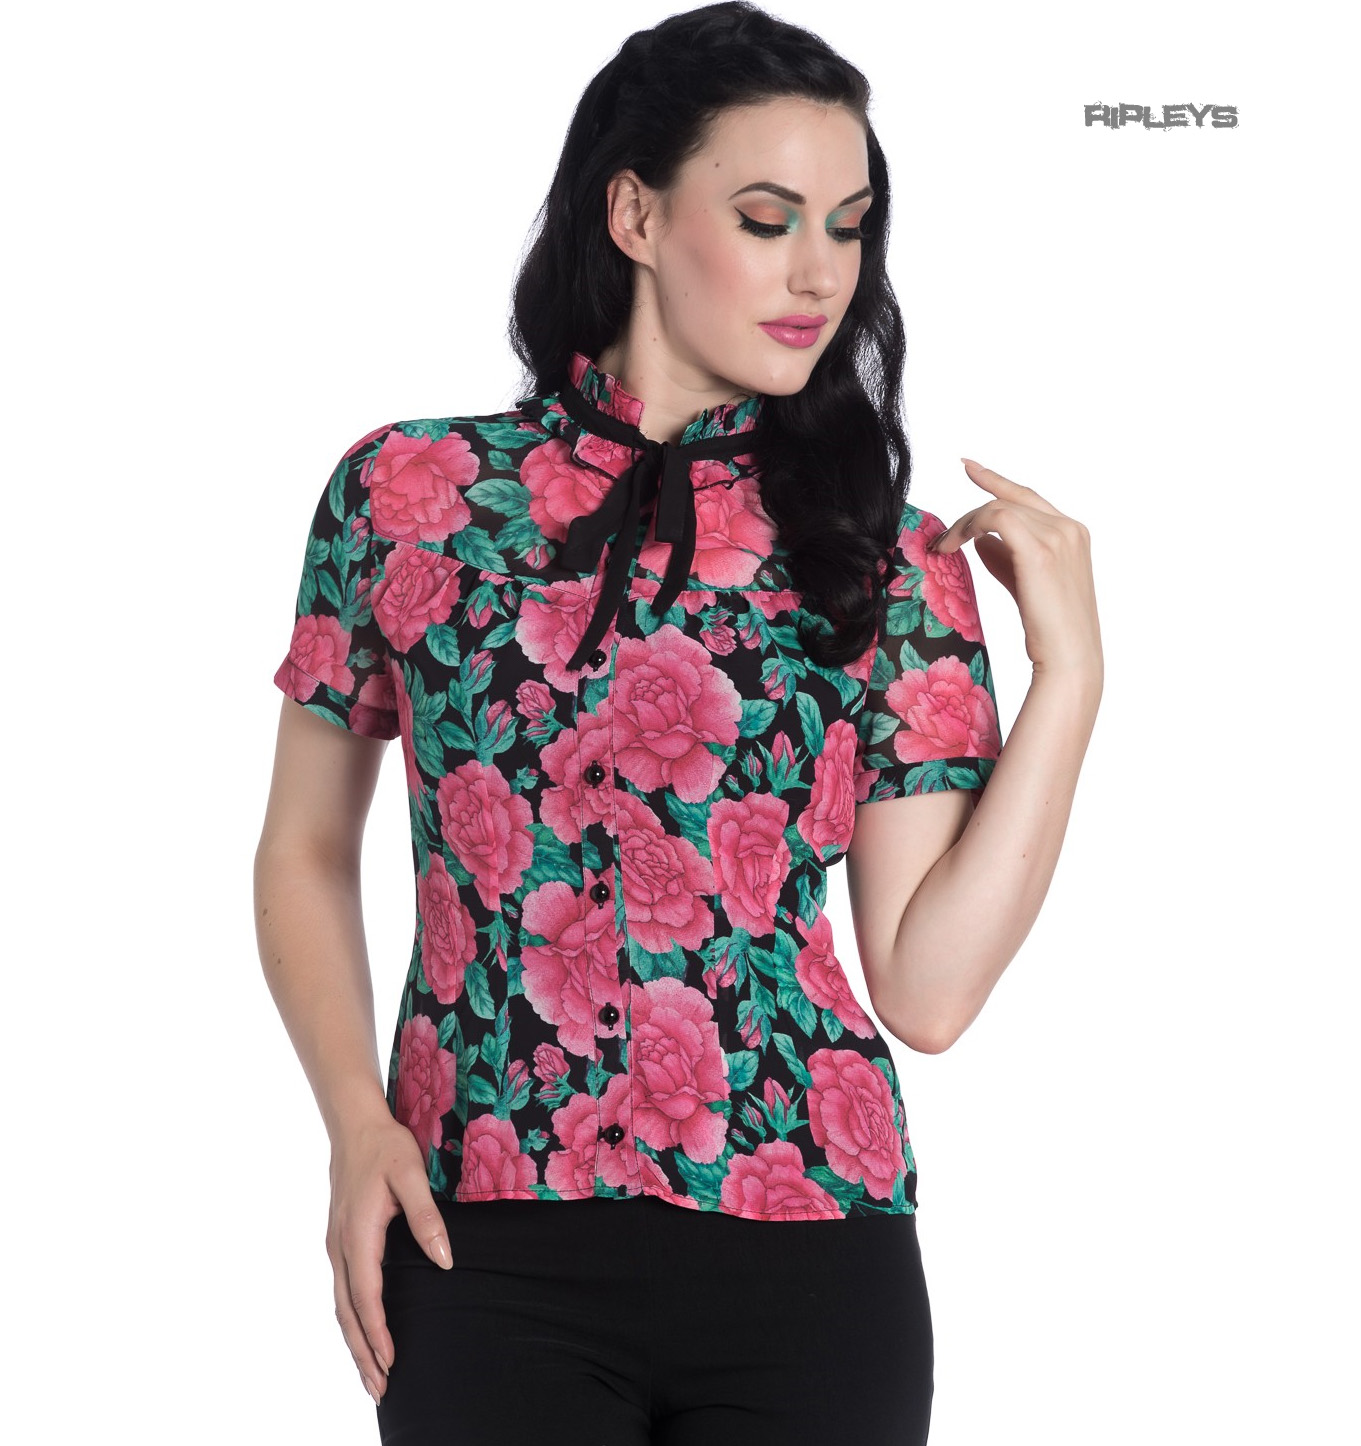 Hell-Bunny-Shirt-Top-Flowers-Roses-EDEN-ROSE-Black-Pink-Blouse-All-Sizes thumbnail 6